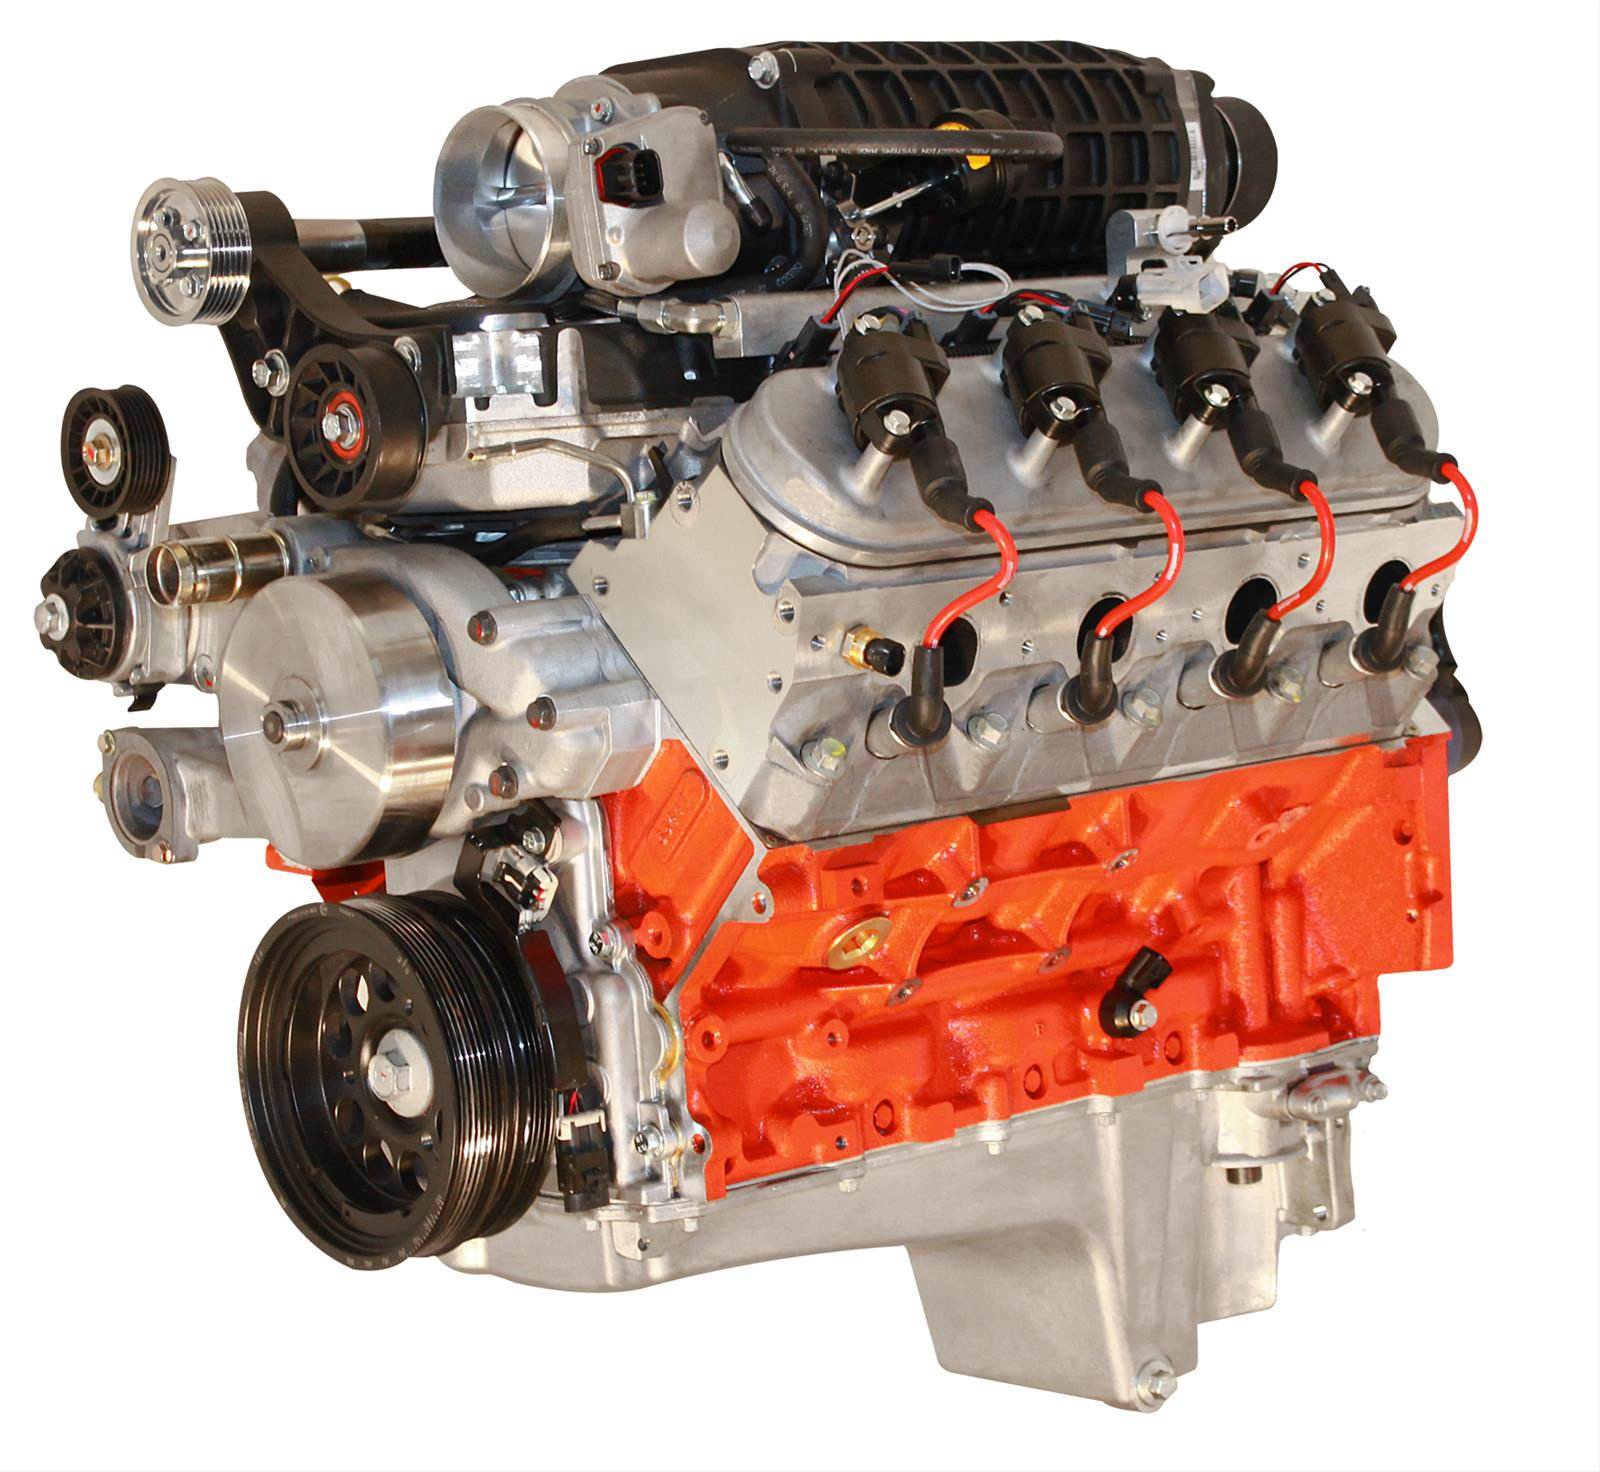 Blueprint engines pro series chevy ls 427 cid 750 hp blueprint engines pro series chevy ls 427 cid 750 hp supercharged fuel injected crate engines psls4272sct free shipping on orders over 99 at summit malvernweather